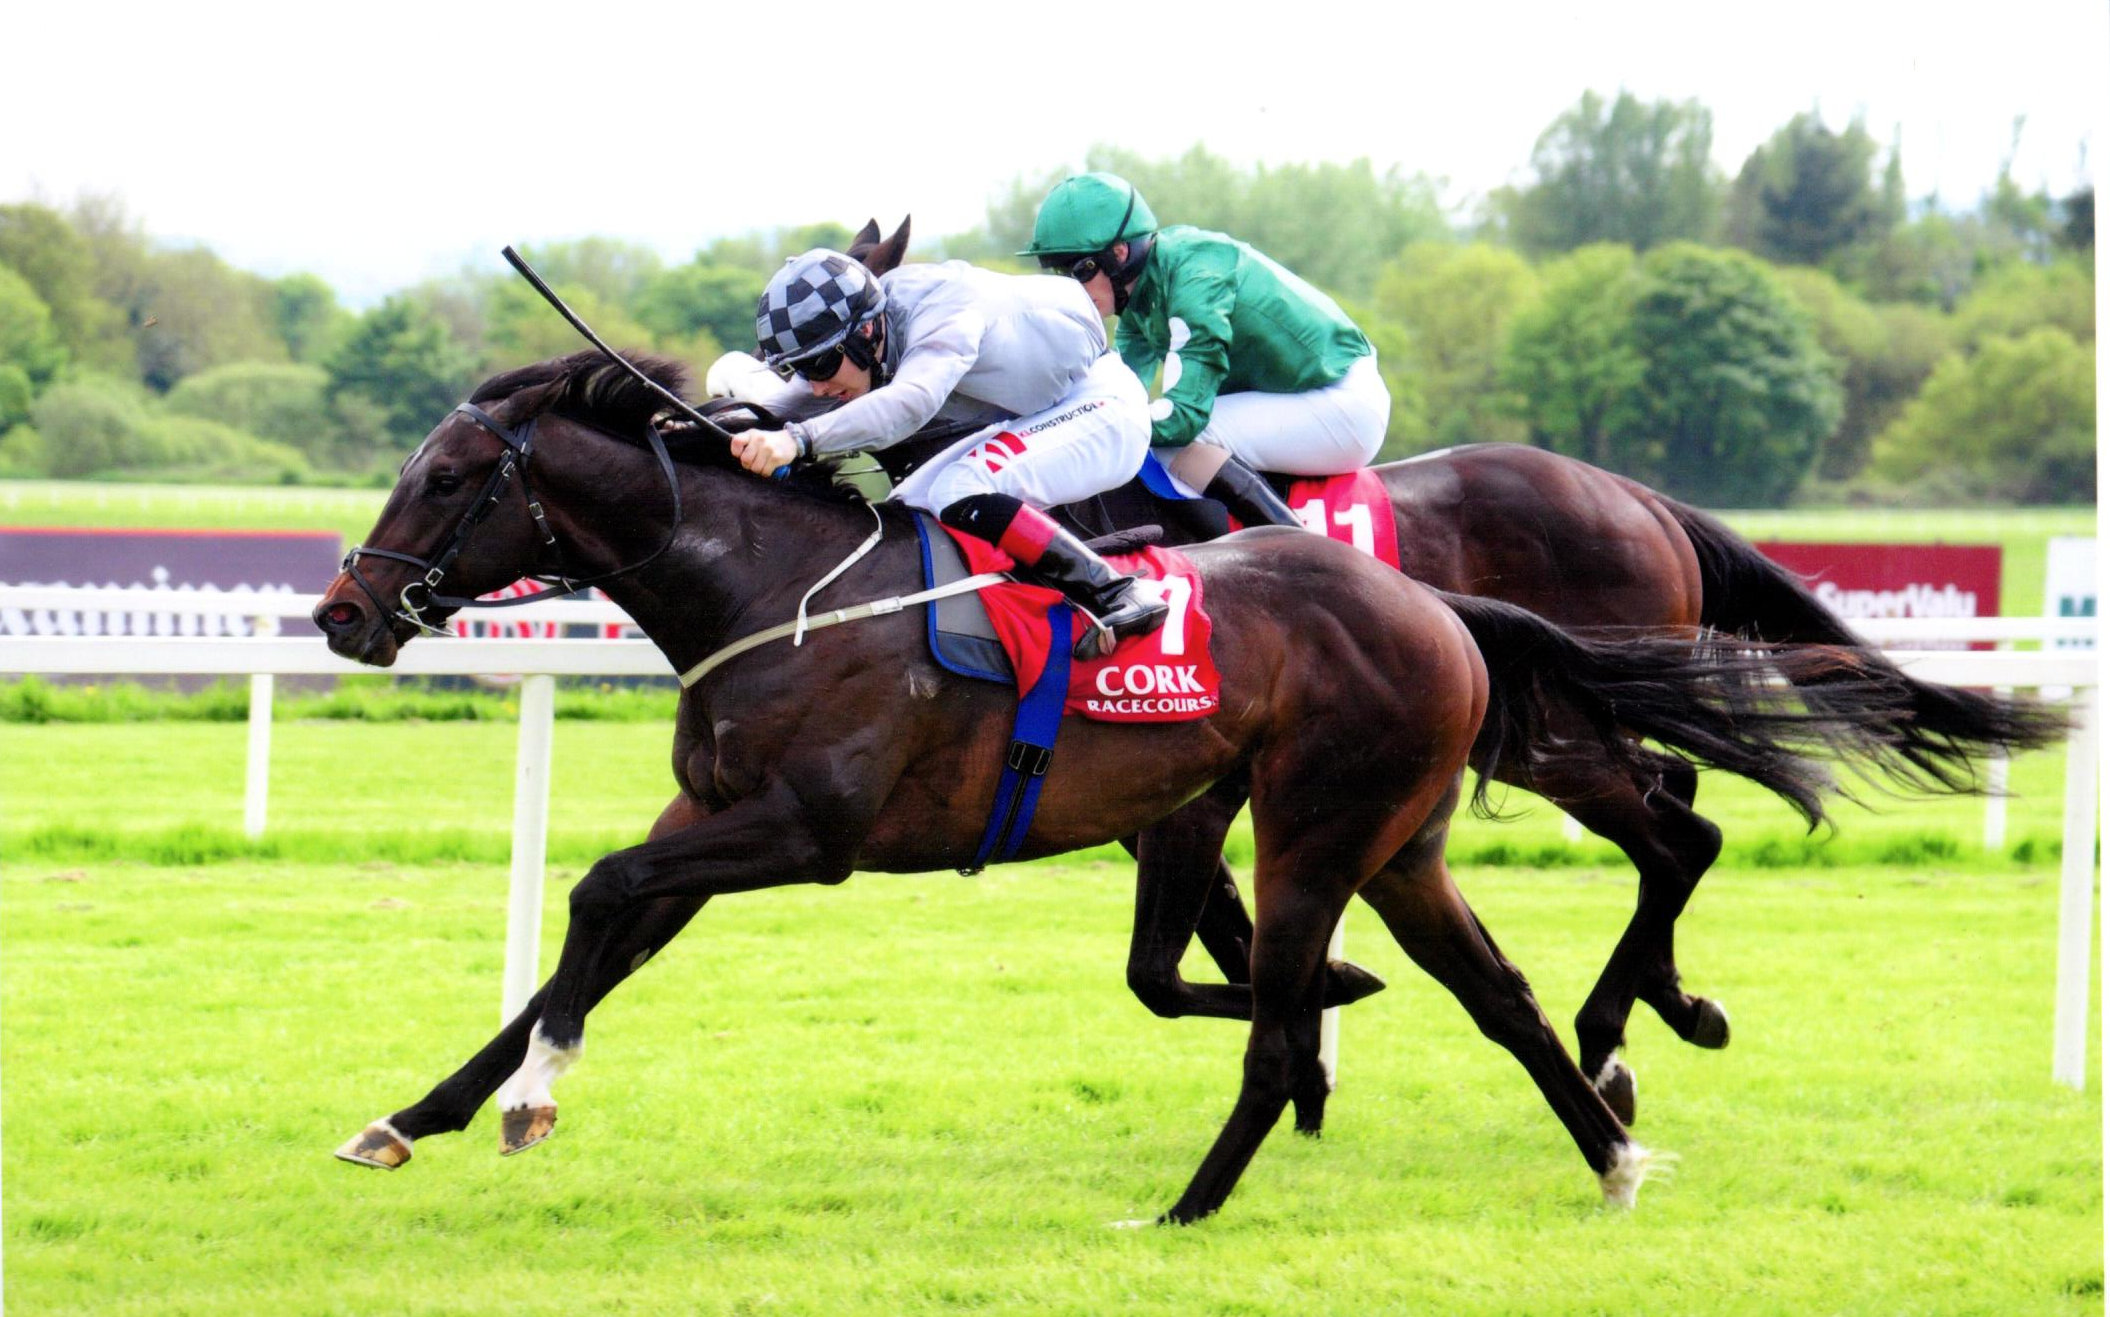 INVASION DAY is driven home under Colin Keane to win his maiden Cork, 18th May 18